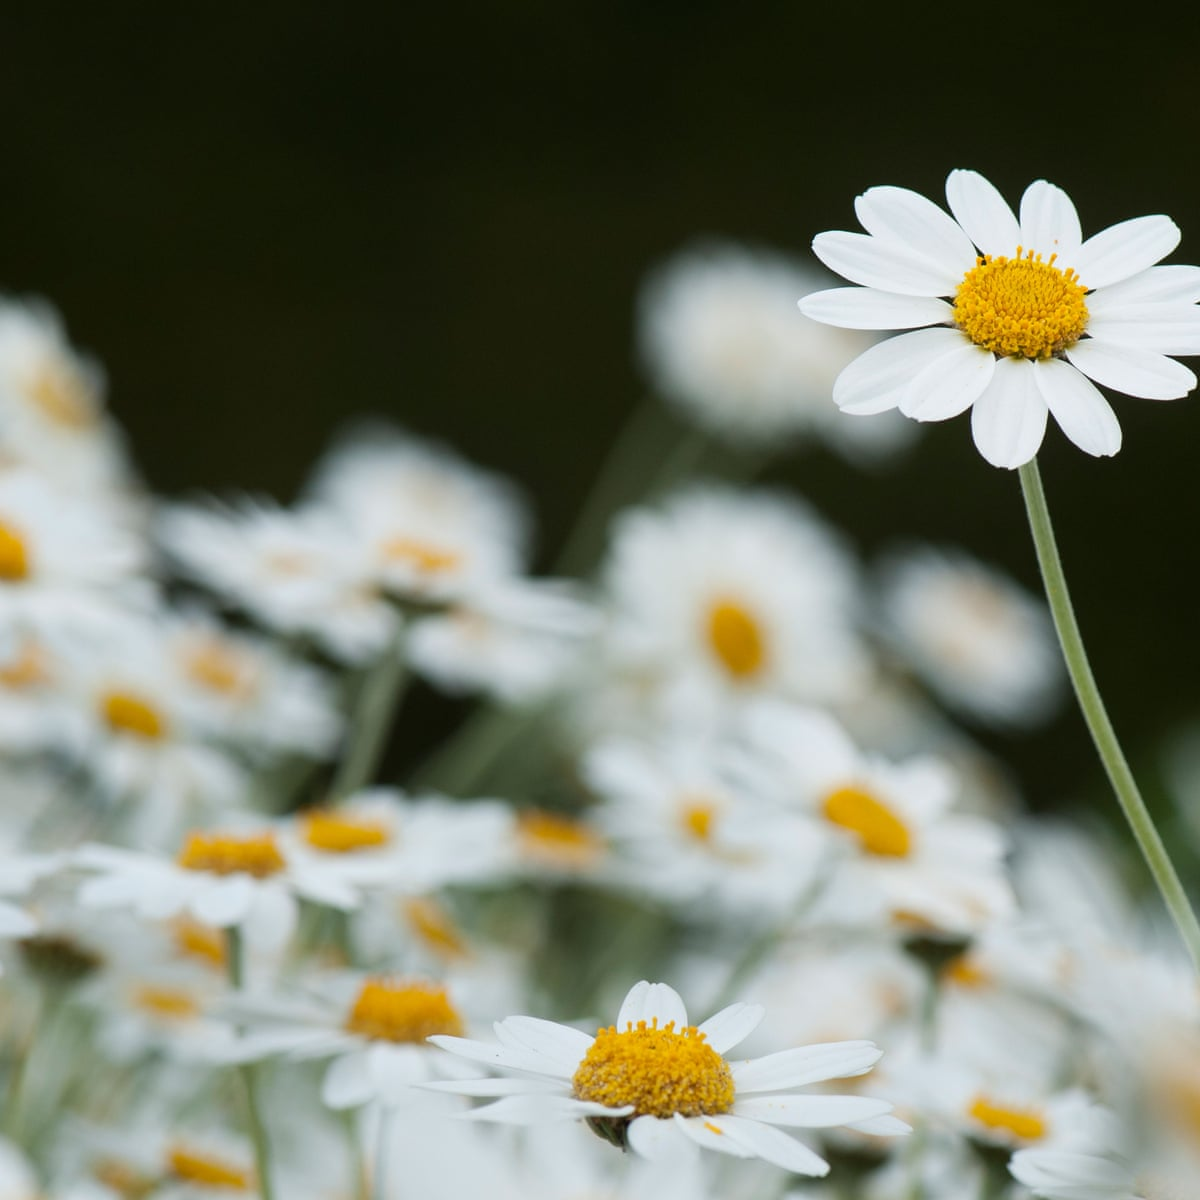 Chamomile Herb Seeds For Sale - In Stock - Ebay for Beginners